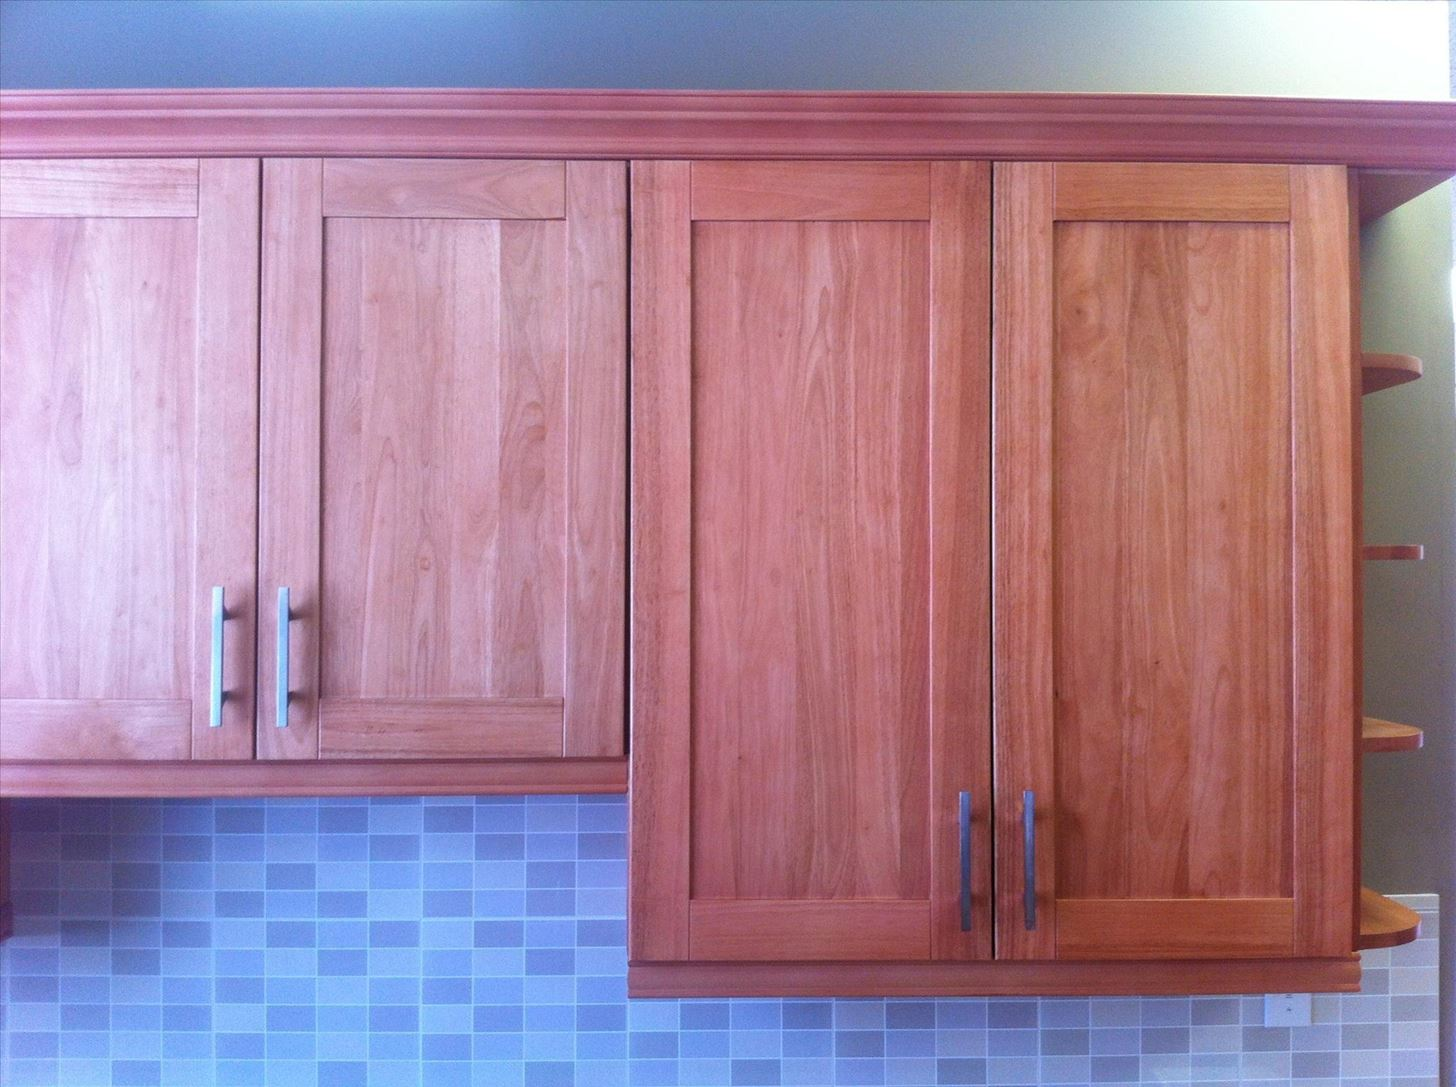 How to Adjust the Alignment of Cabinet Doors « Construction \u0026 Repair :: WonderHowTo & How to Adjust the Alignment of Cabinet Doors « Construction ... kurilladesign.com